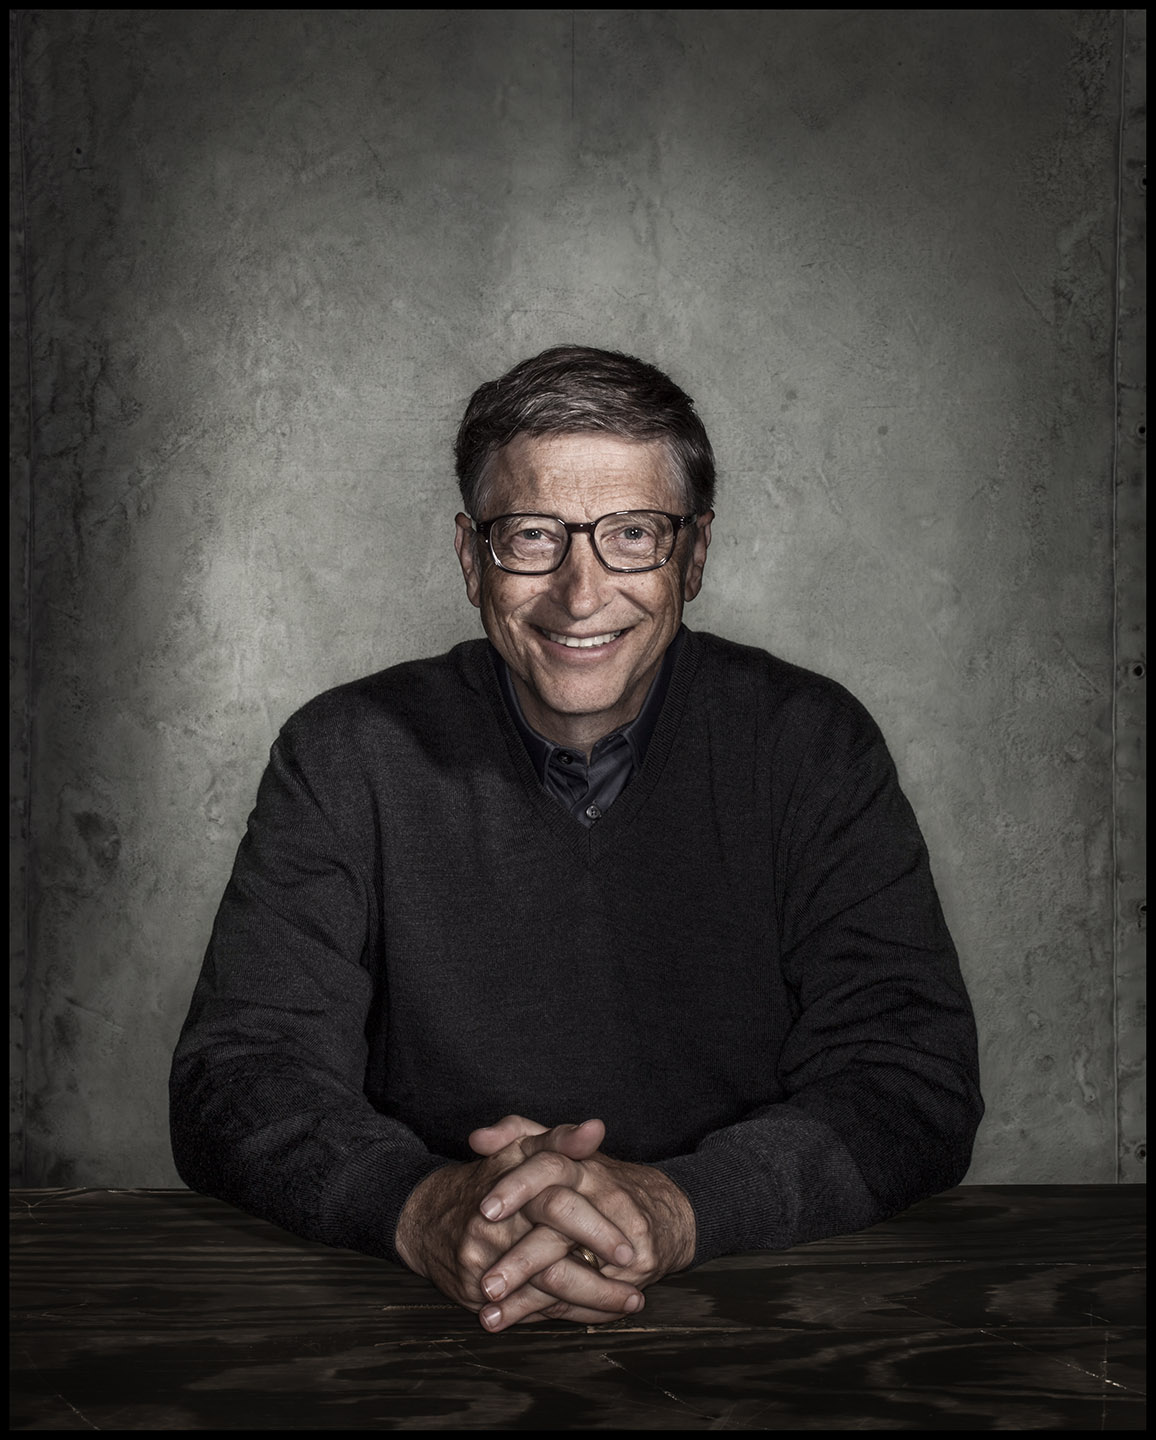 Bill Gates - Kirkland, WA - New Yorker Times Magazine